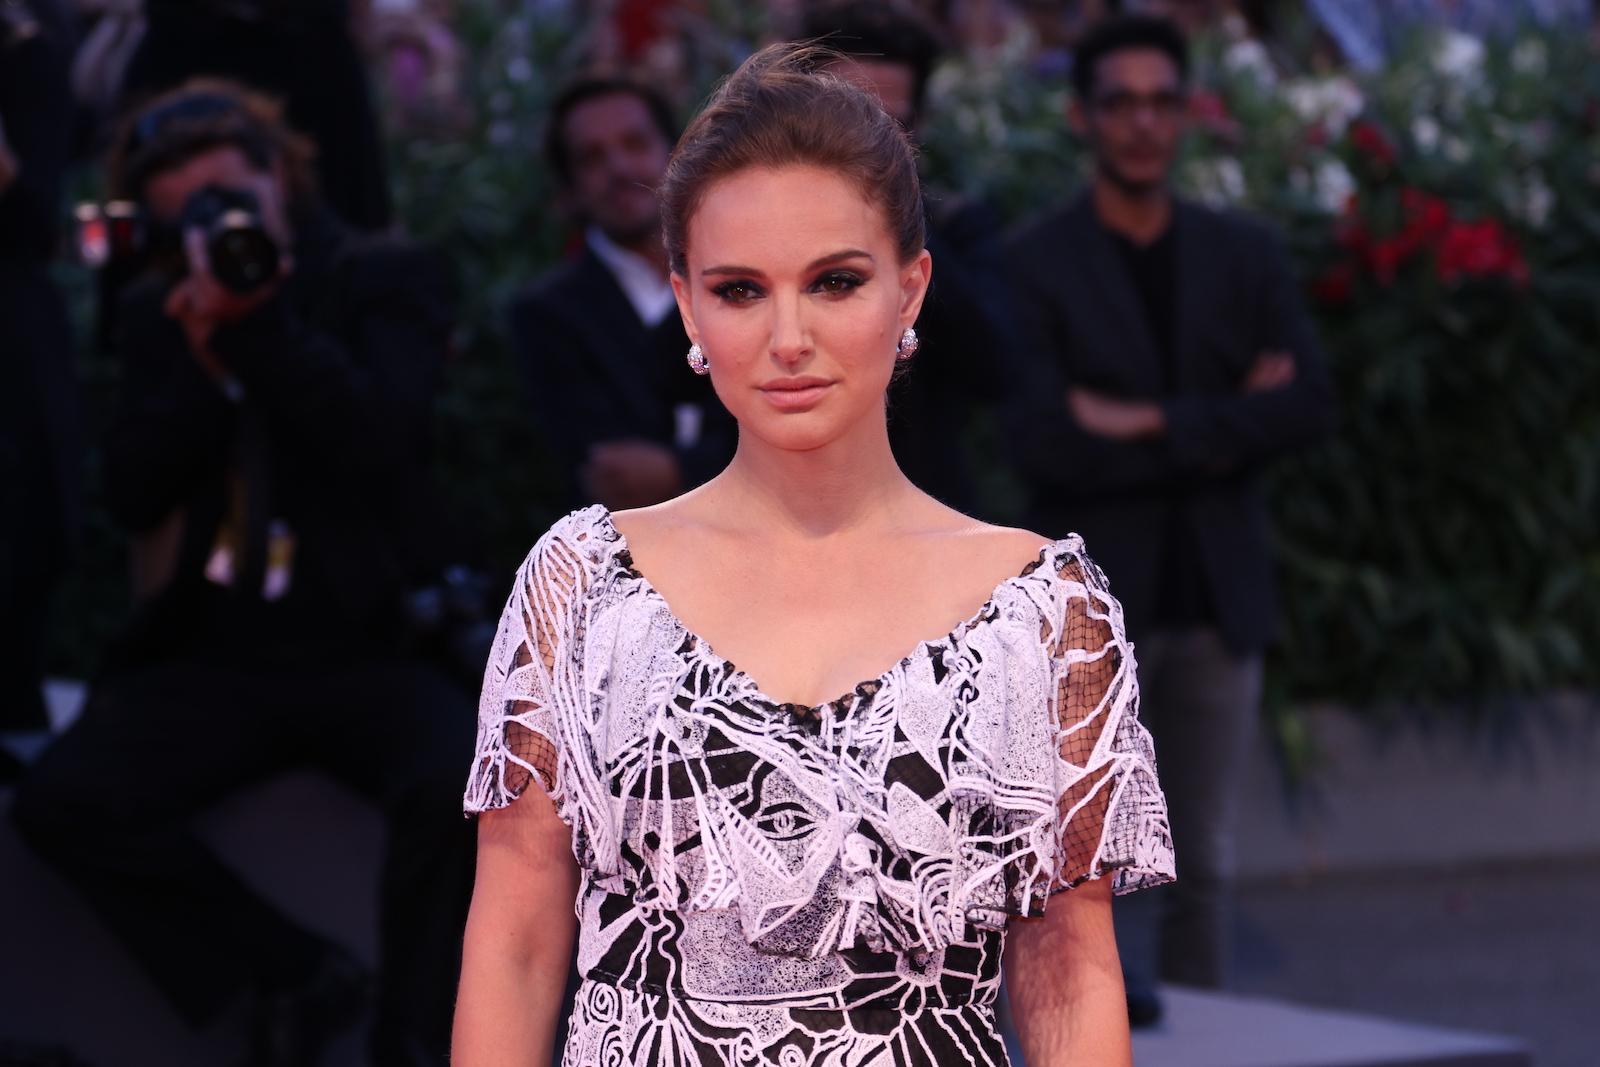 Venezia 2016: Natlaie Portman in uno scatto sul red carpet di Jackie